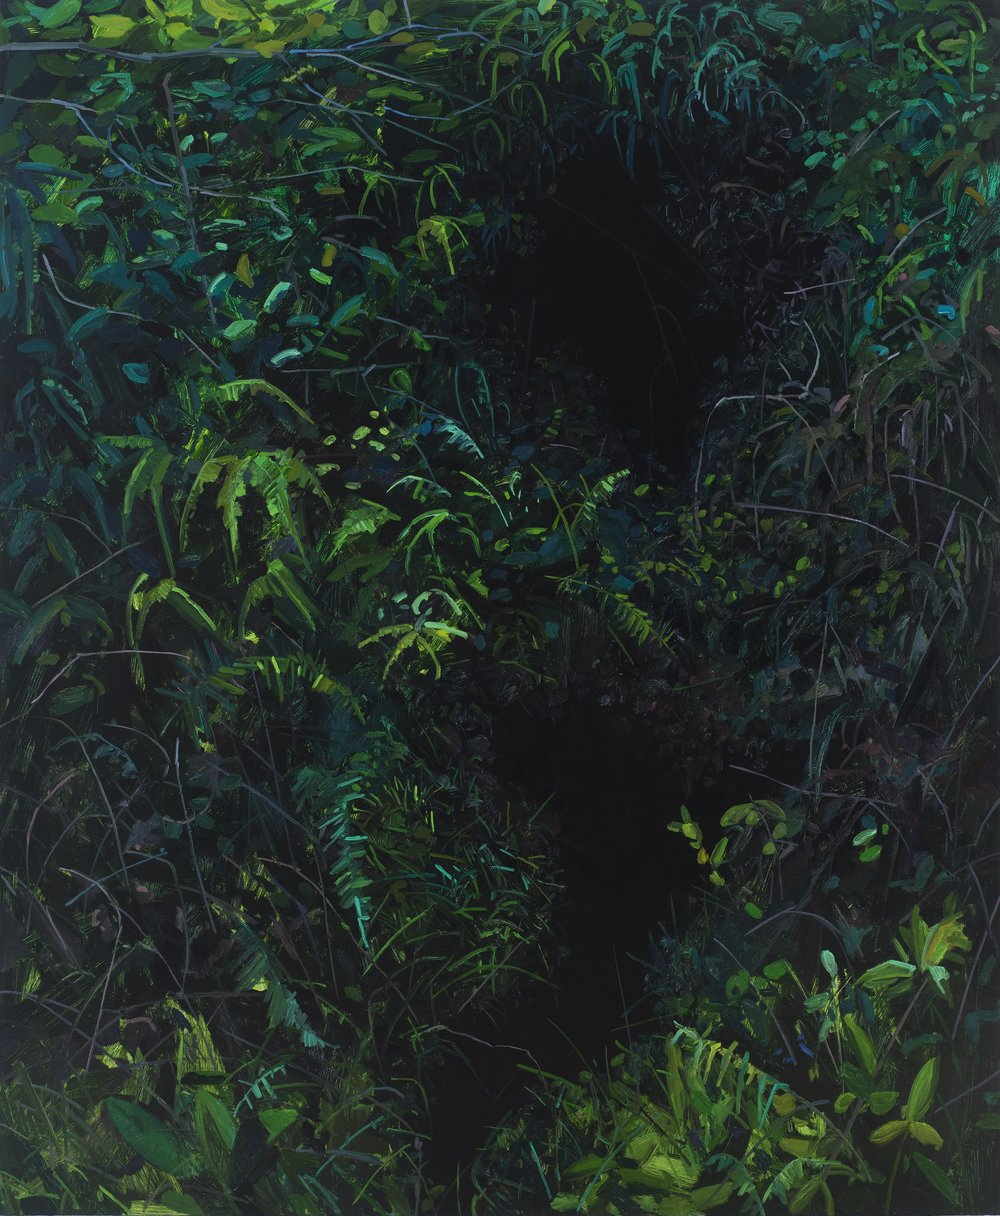 Holes , 2017, Oil on canvas, 72 x 60""